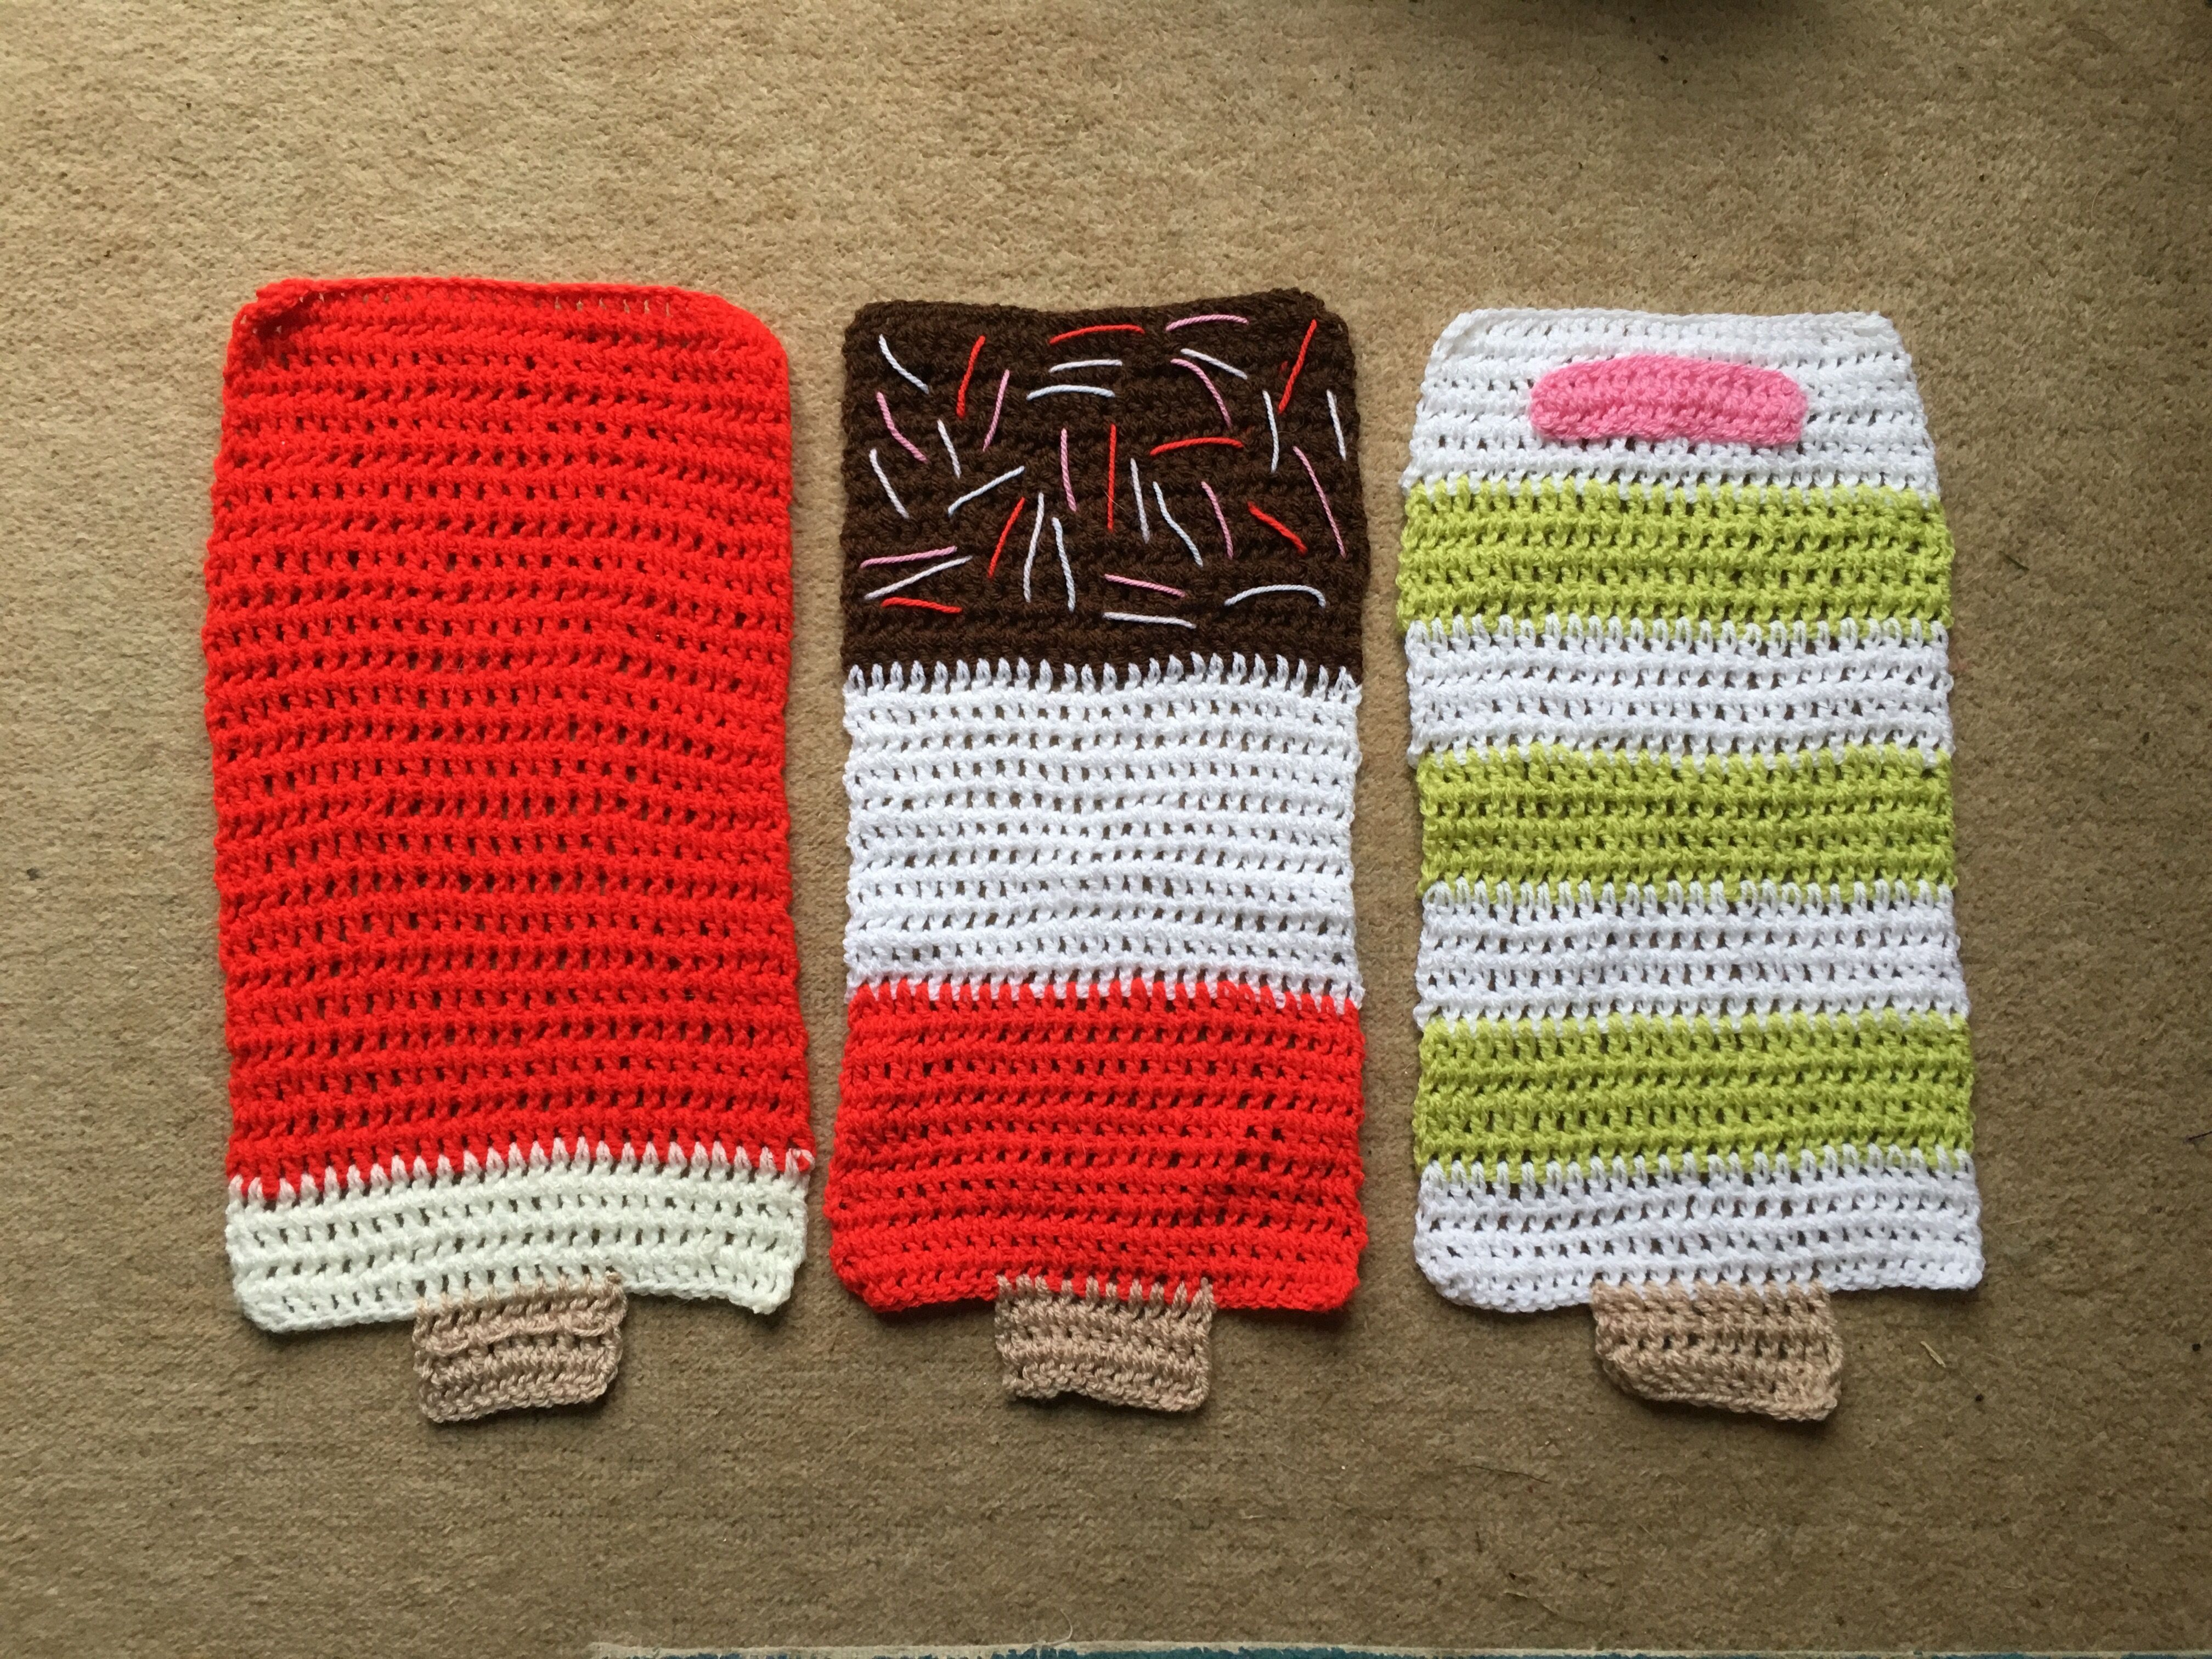 Ice lolly crochet place mats